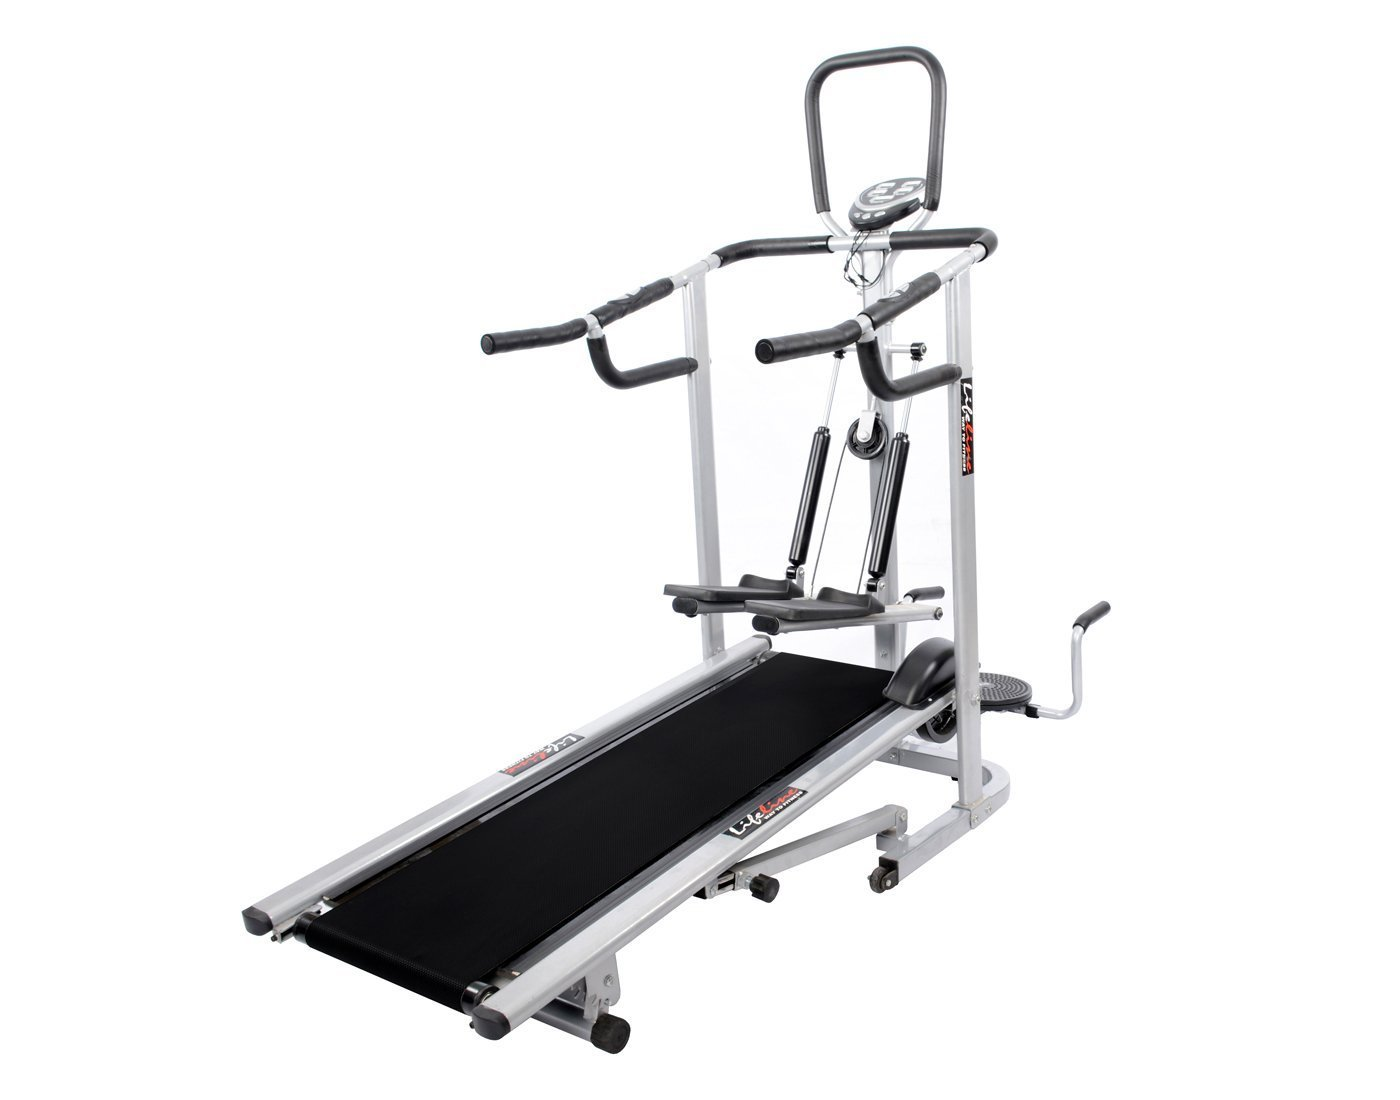 Best Manual Treadmill 2021